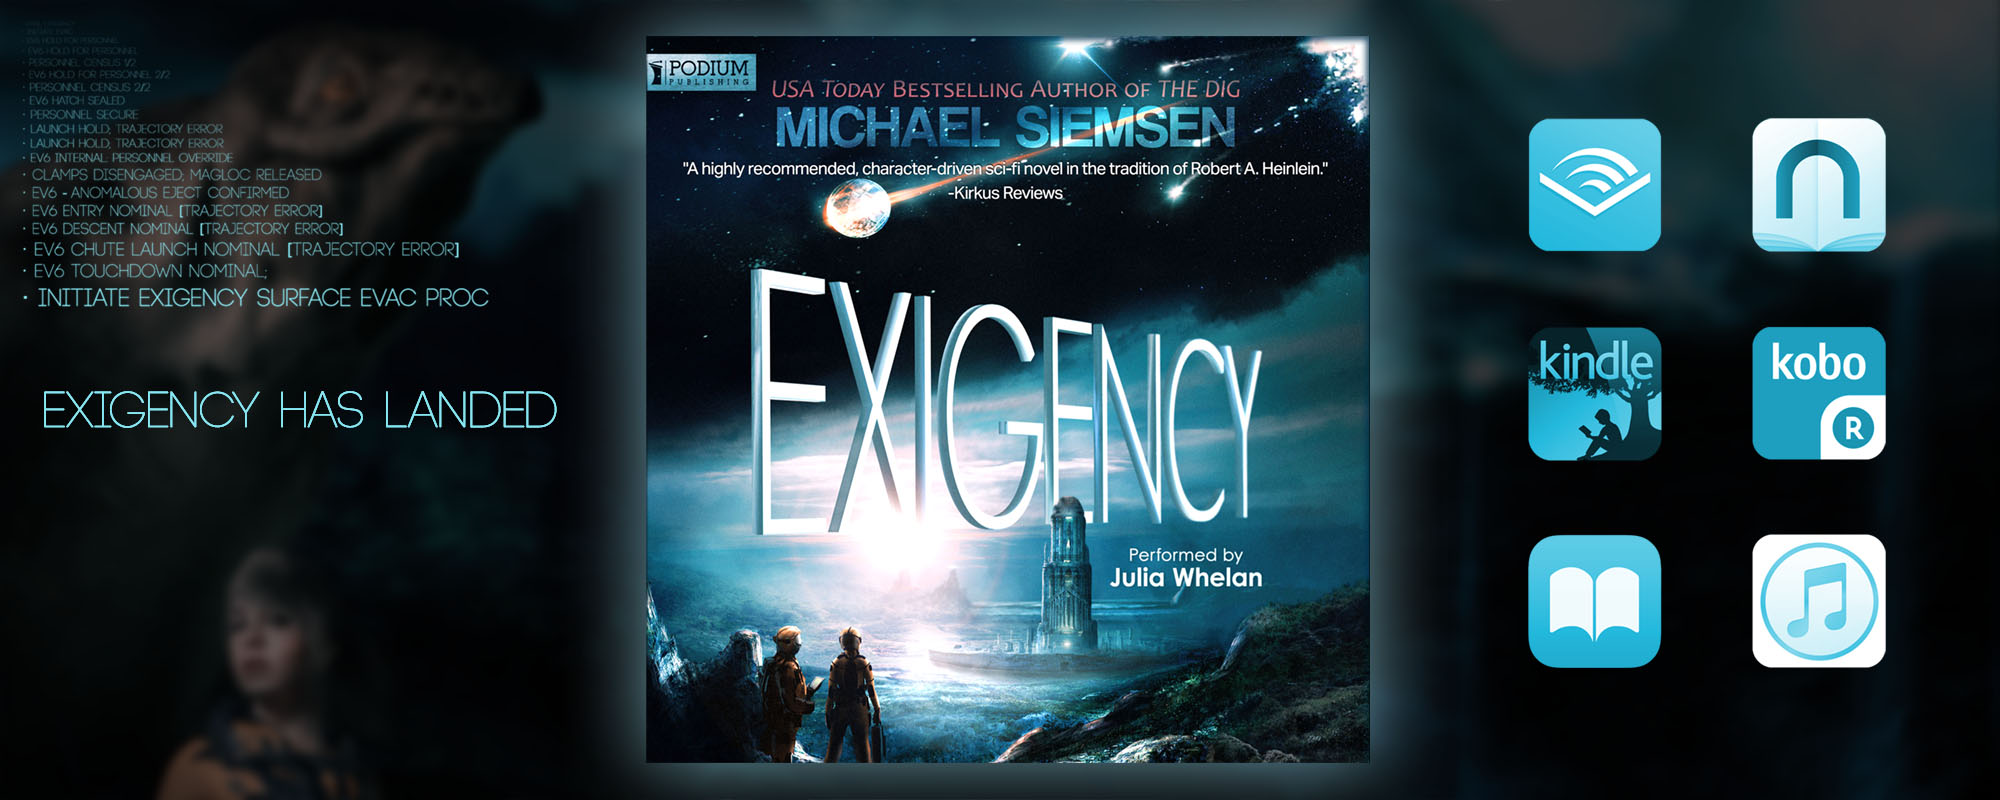 a warm place to call home by michael siemsen reviews a place called home book Exigency Audiobook Release Banner